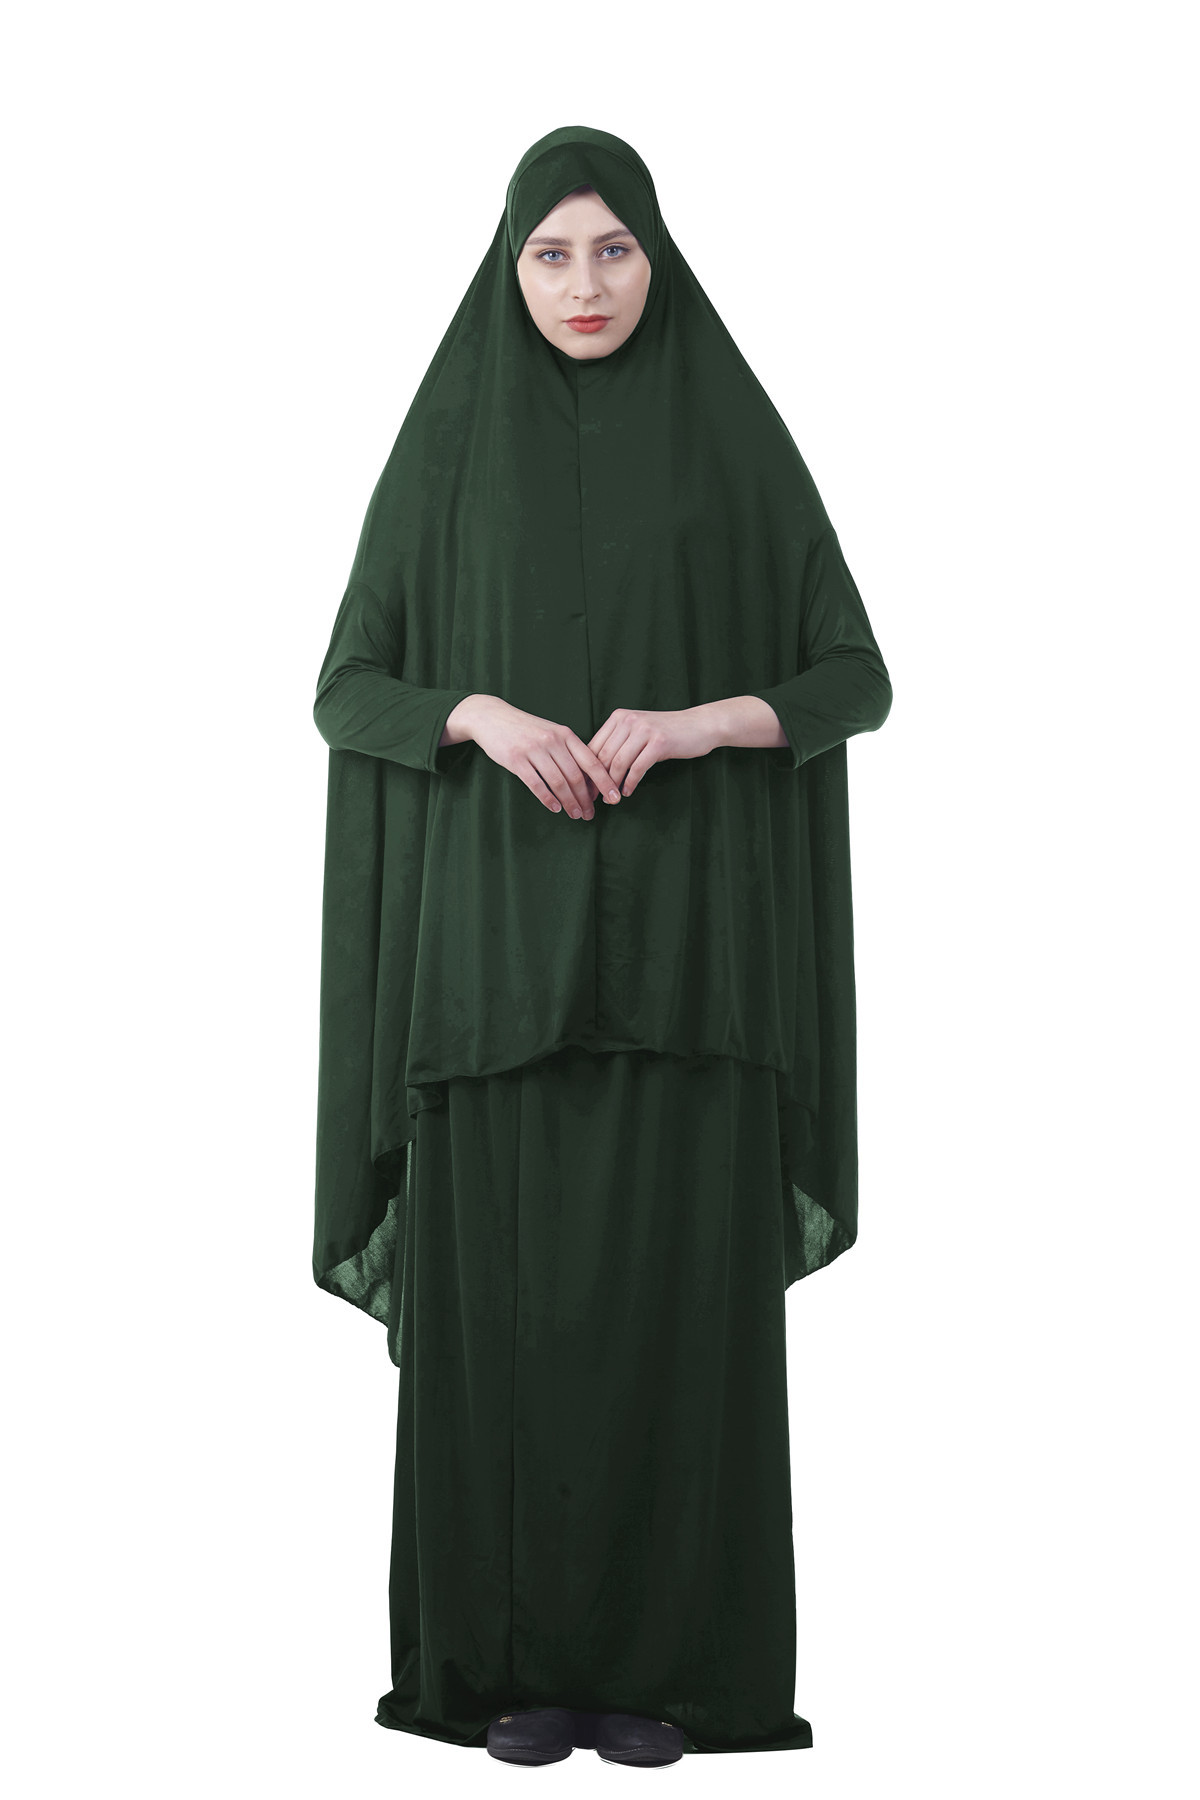 Image 2 - Formal Muslim Prayer Garment Sets Women Hijab Dress Abaya Islamic